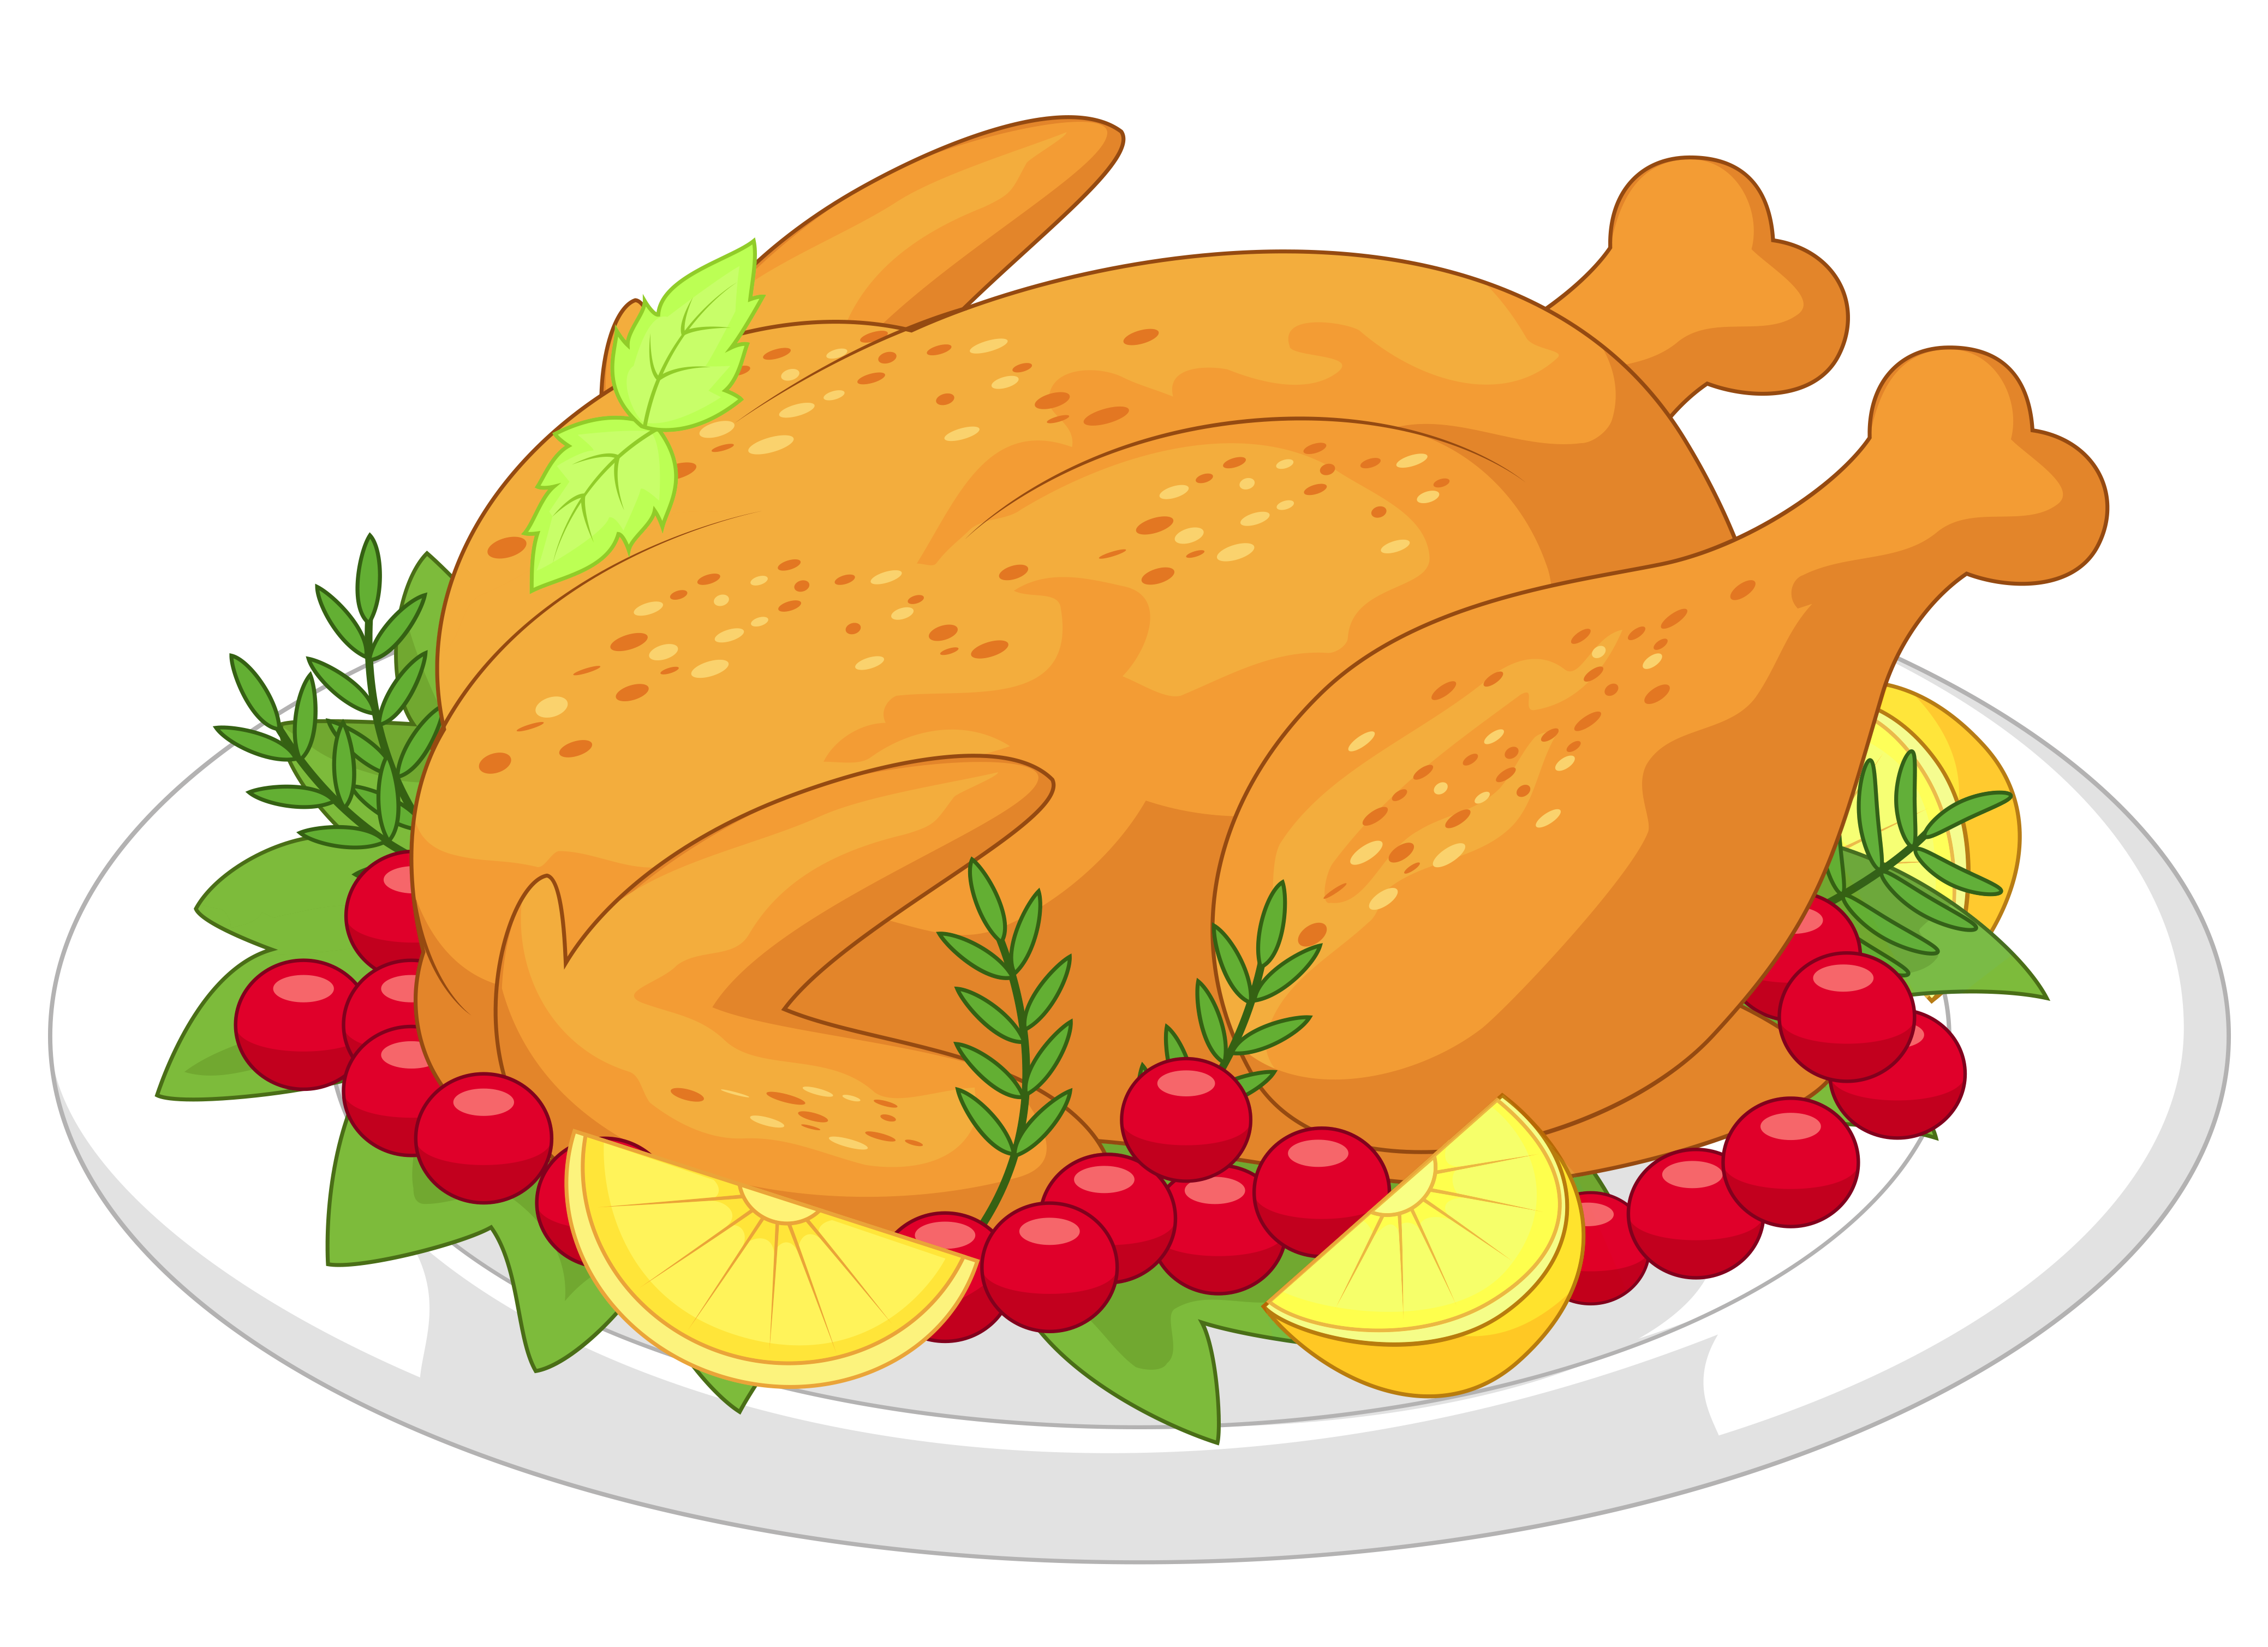 Thanksgiving clipart clear background. Turkey clip art png